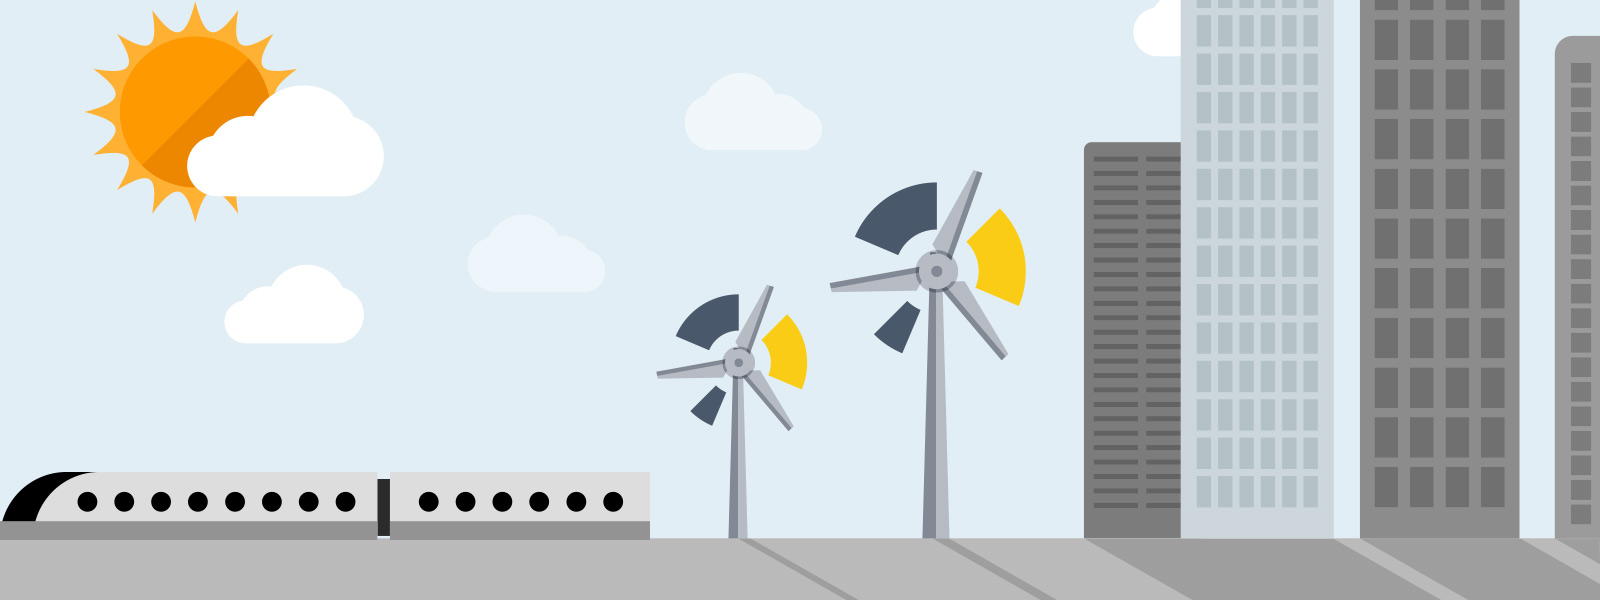 Qa Workdays Commitment To Renewable Energy And Reducing Our Green Blog Useful Windmill Power Systems Carbon Footprint Workday